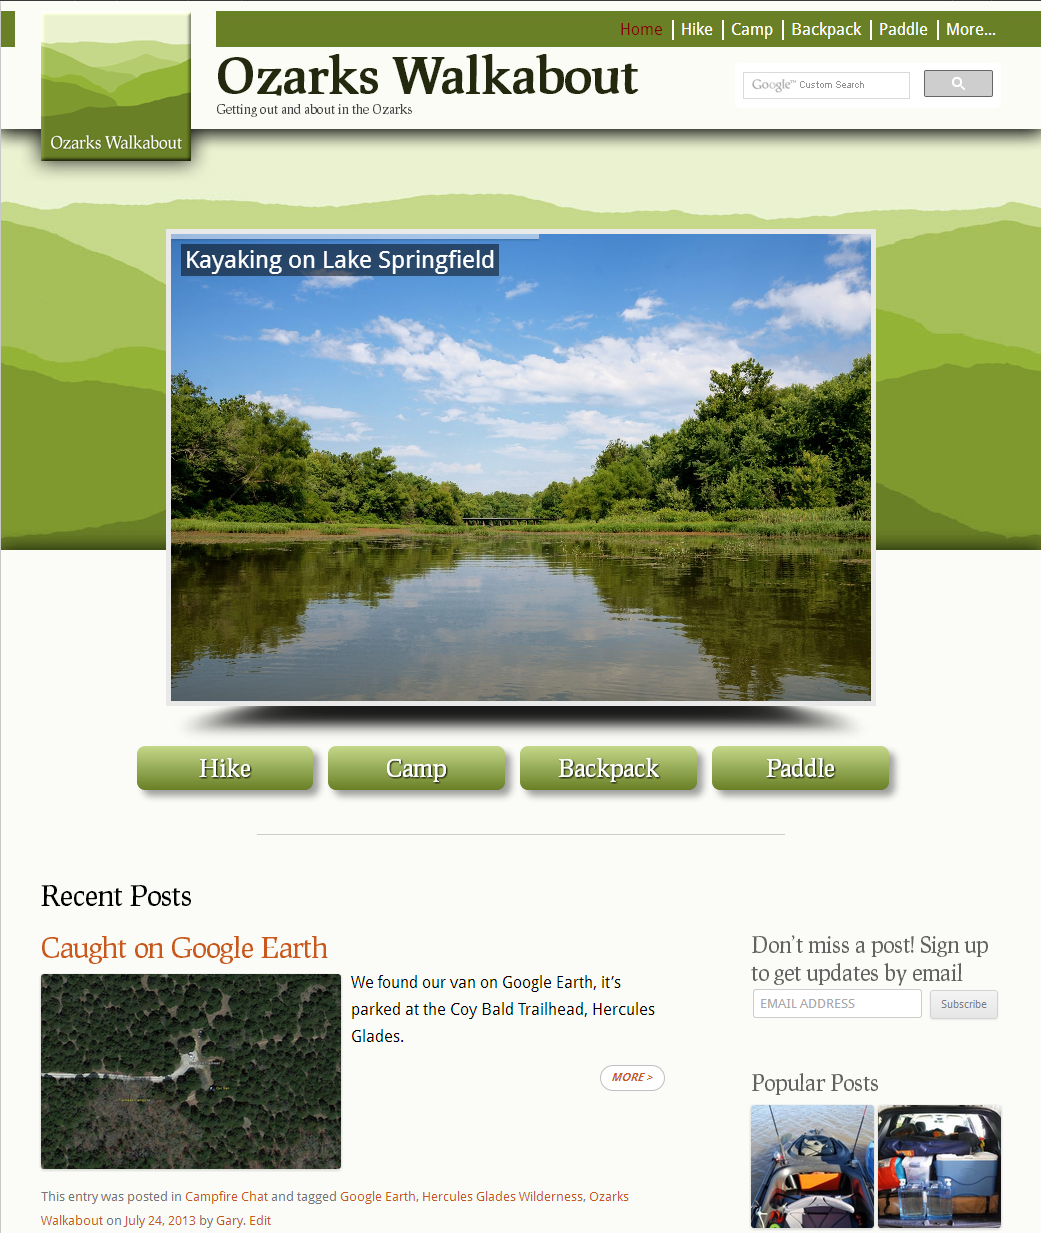 The new look Ozarks Walkabout Website - www.ozarkswalkabout.com